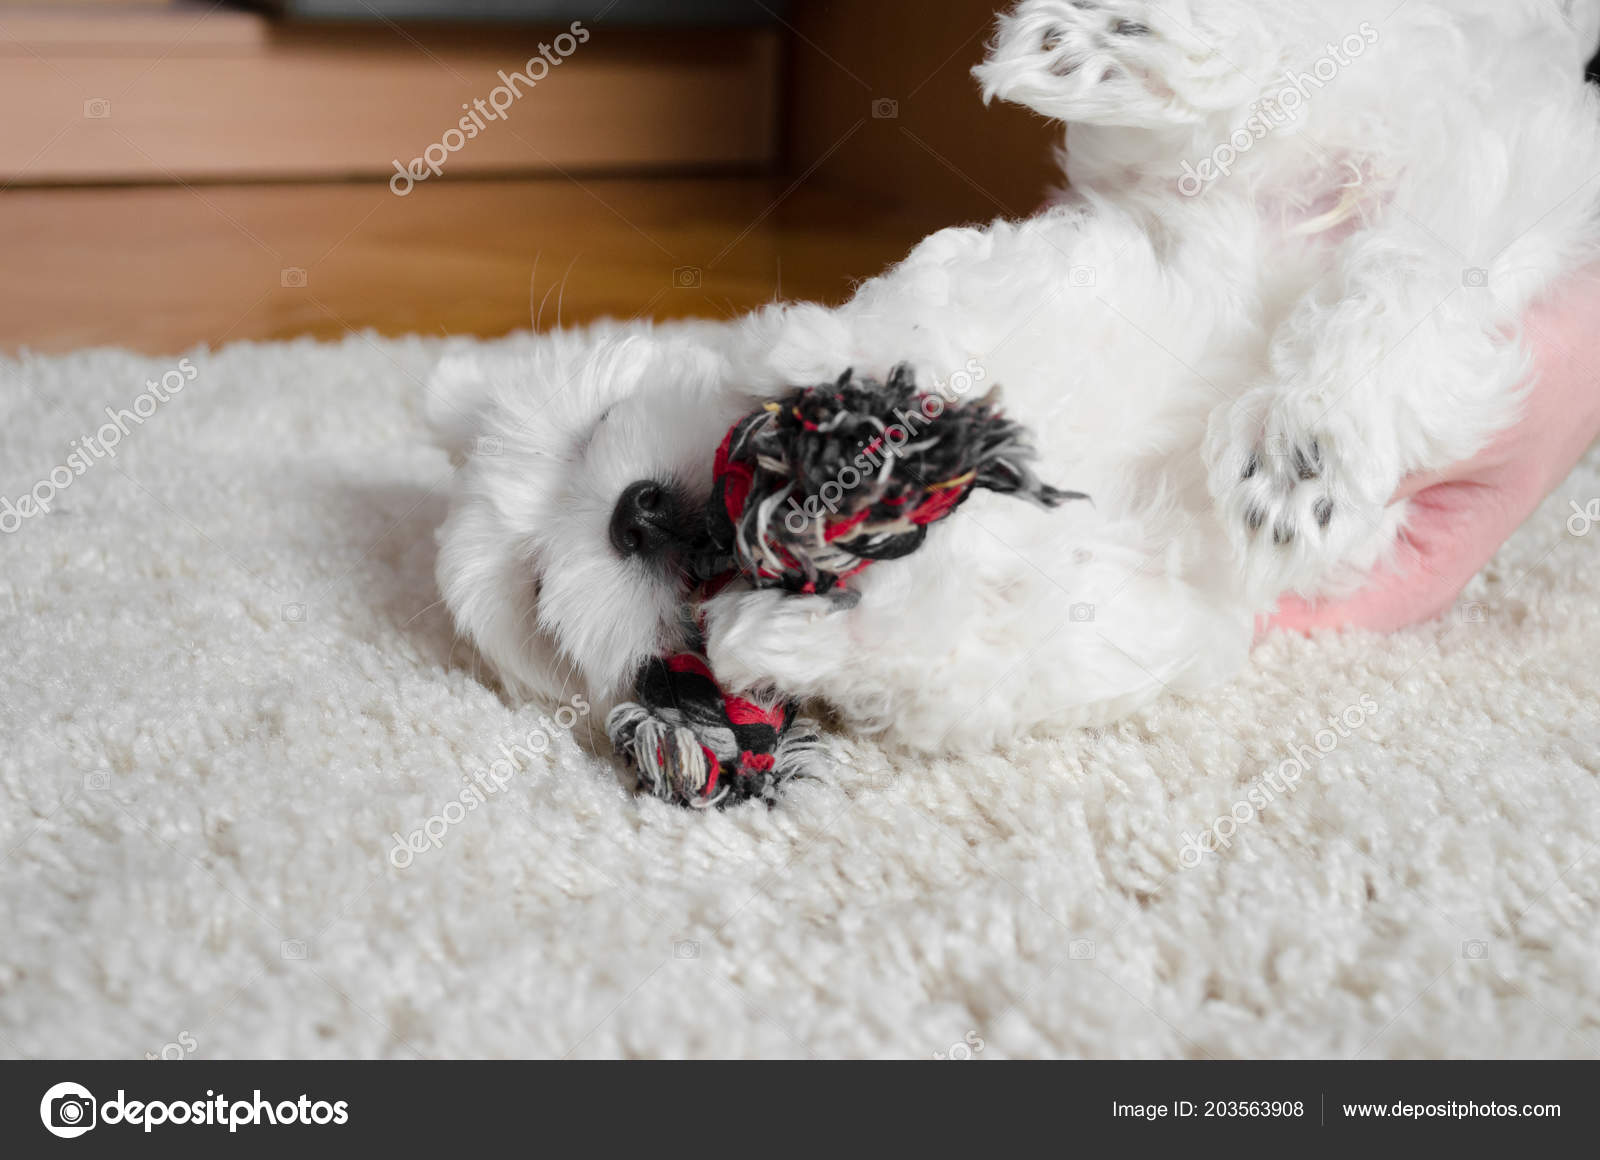 Cute Little White Puppy Playing Toy Carpet Stock Photo